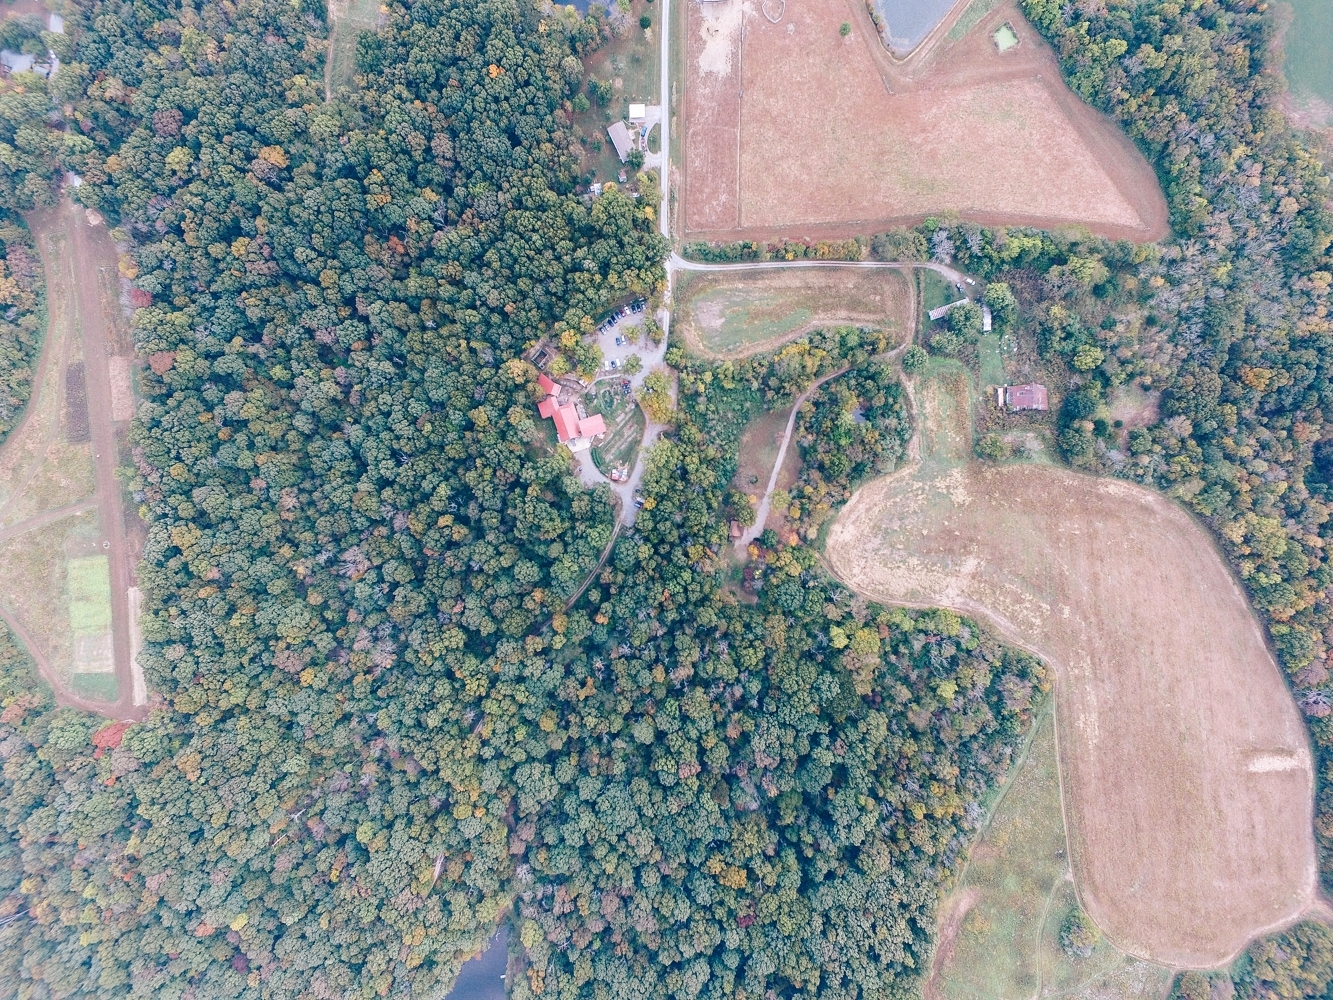 Scratch-Brewing-Co-Carbondale-Ava-Illinois-Good-Beer-Hunting-Matt-Sampson-Photography-Drone-Aerial_1.jpg